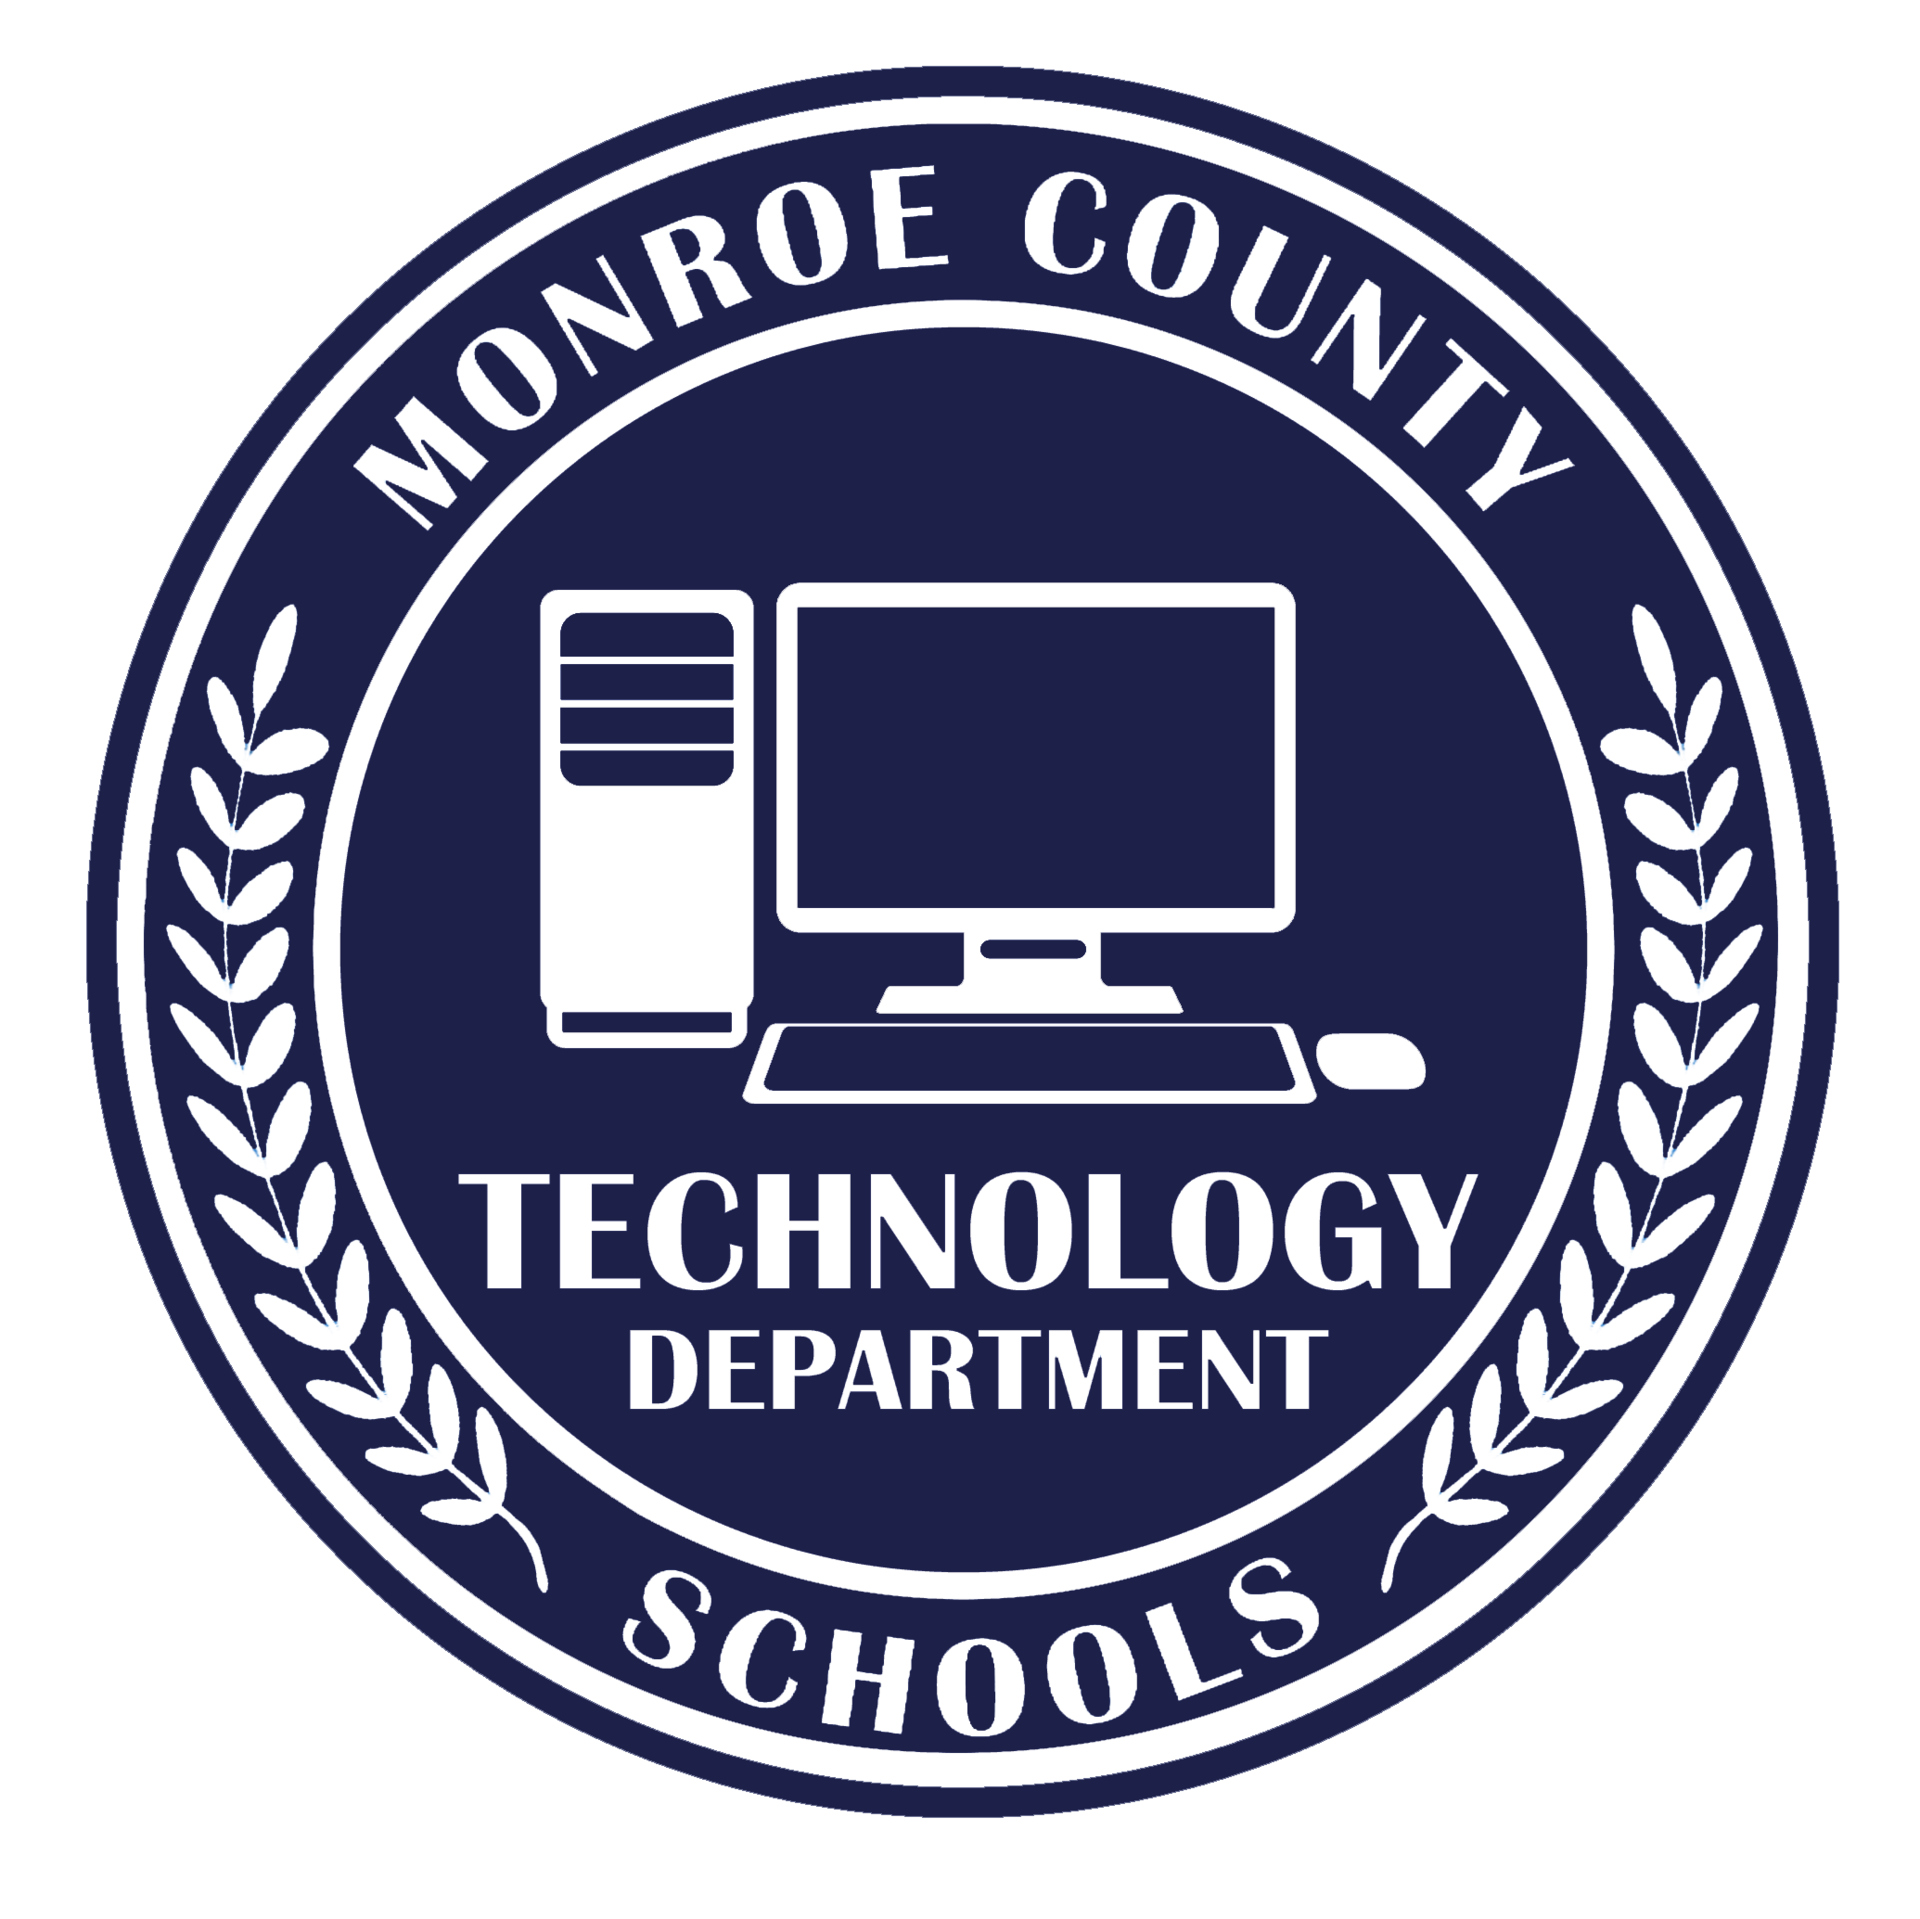 Monroe County Schools Technology